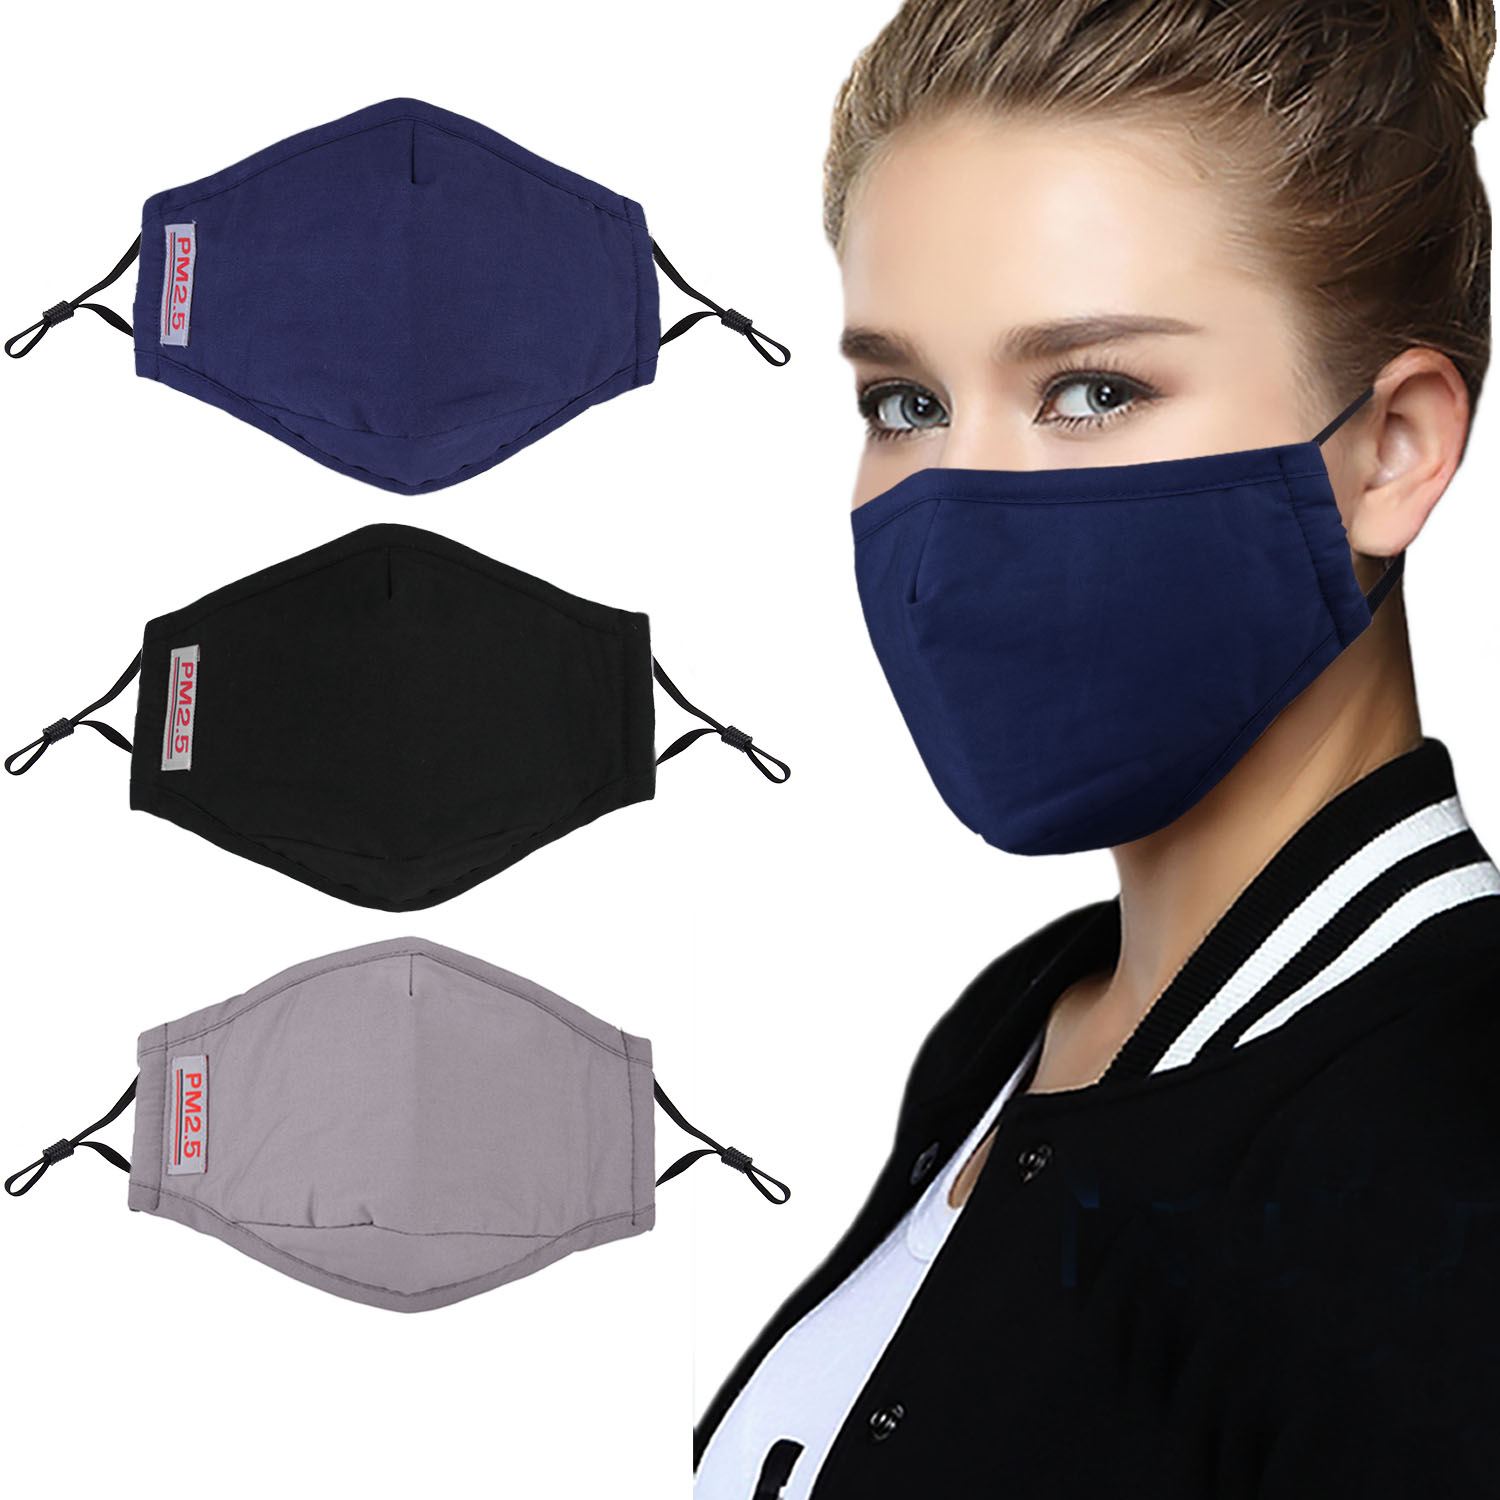 3pcs Fashion Face Mouth Mask Anti Dust Mask PM2.5 Filter  Windproof Mouth muffle Bacteria Proof Flu Face Masks Care  ReusableWomens Masks